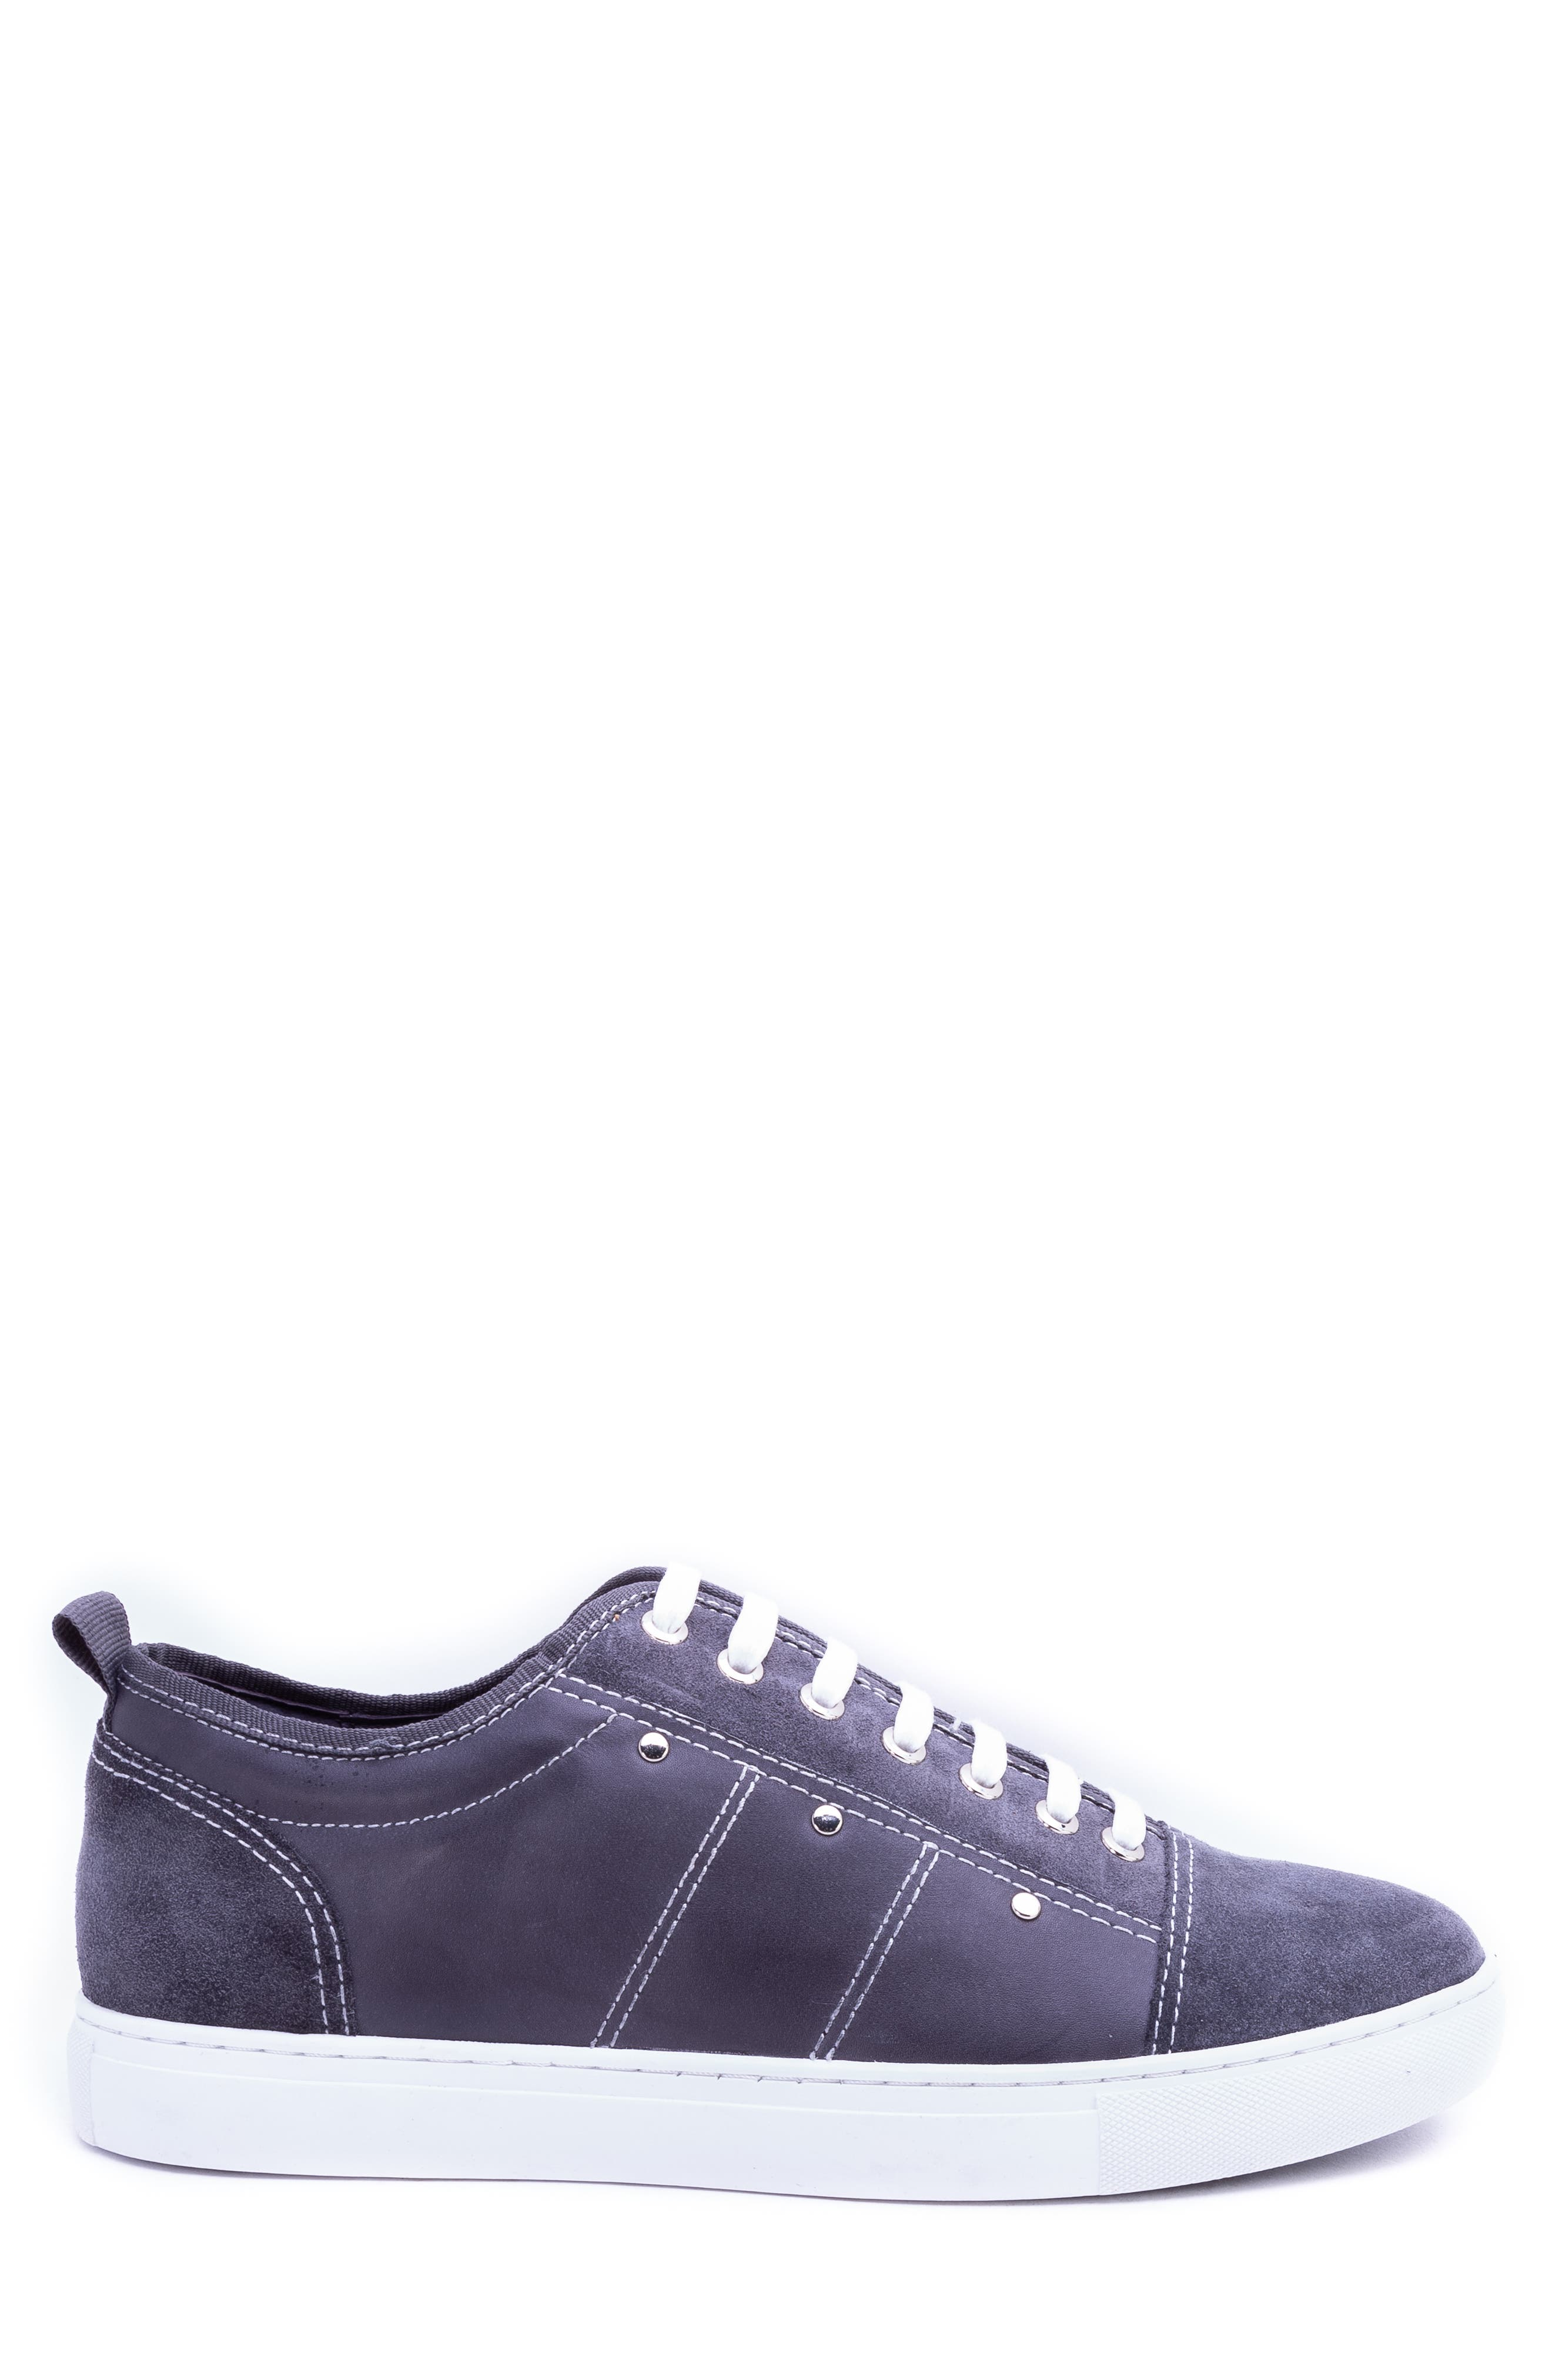 Severn Studded Low Top Sneaker,                             Alternate thumbnail 3, color,                             GREY SUEDE/ LEATHER